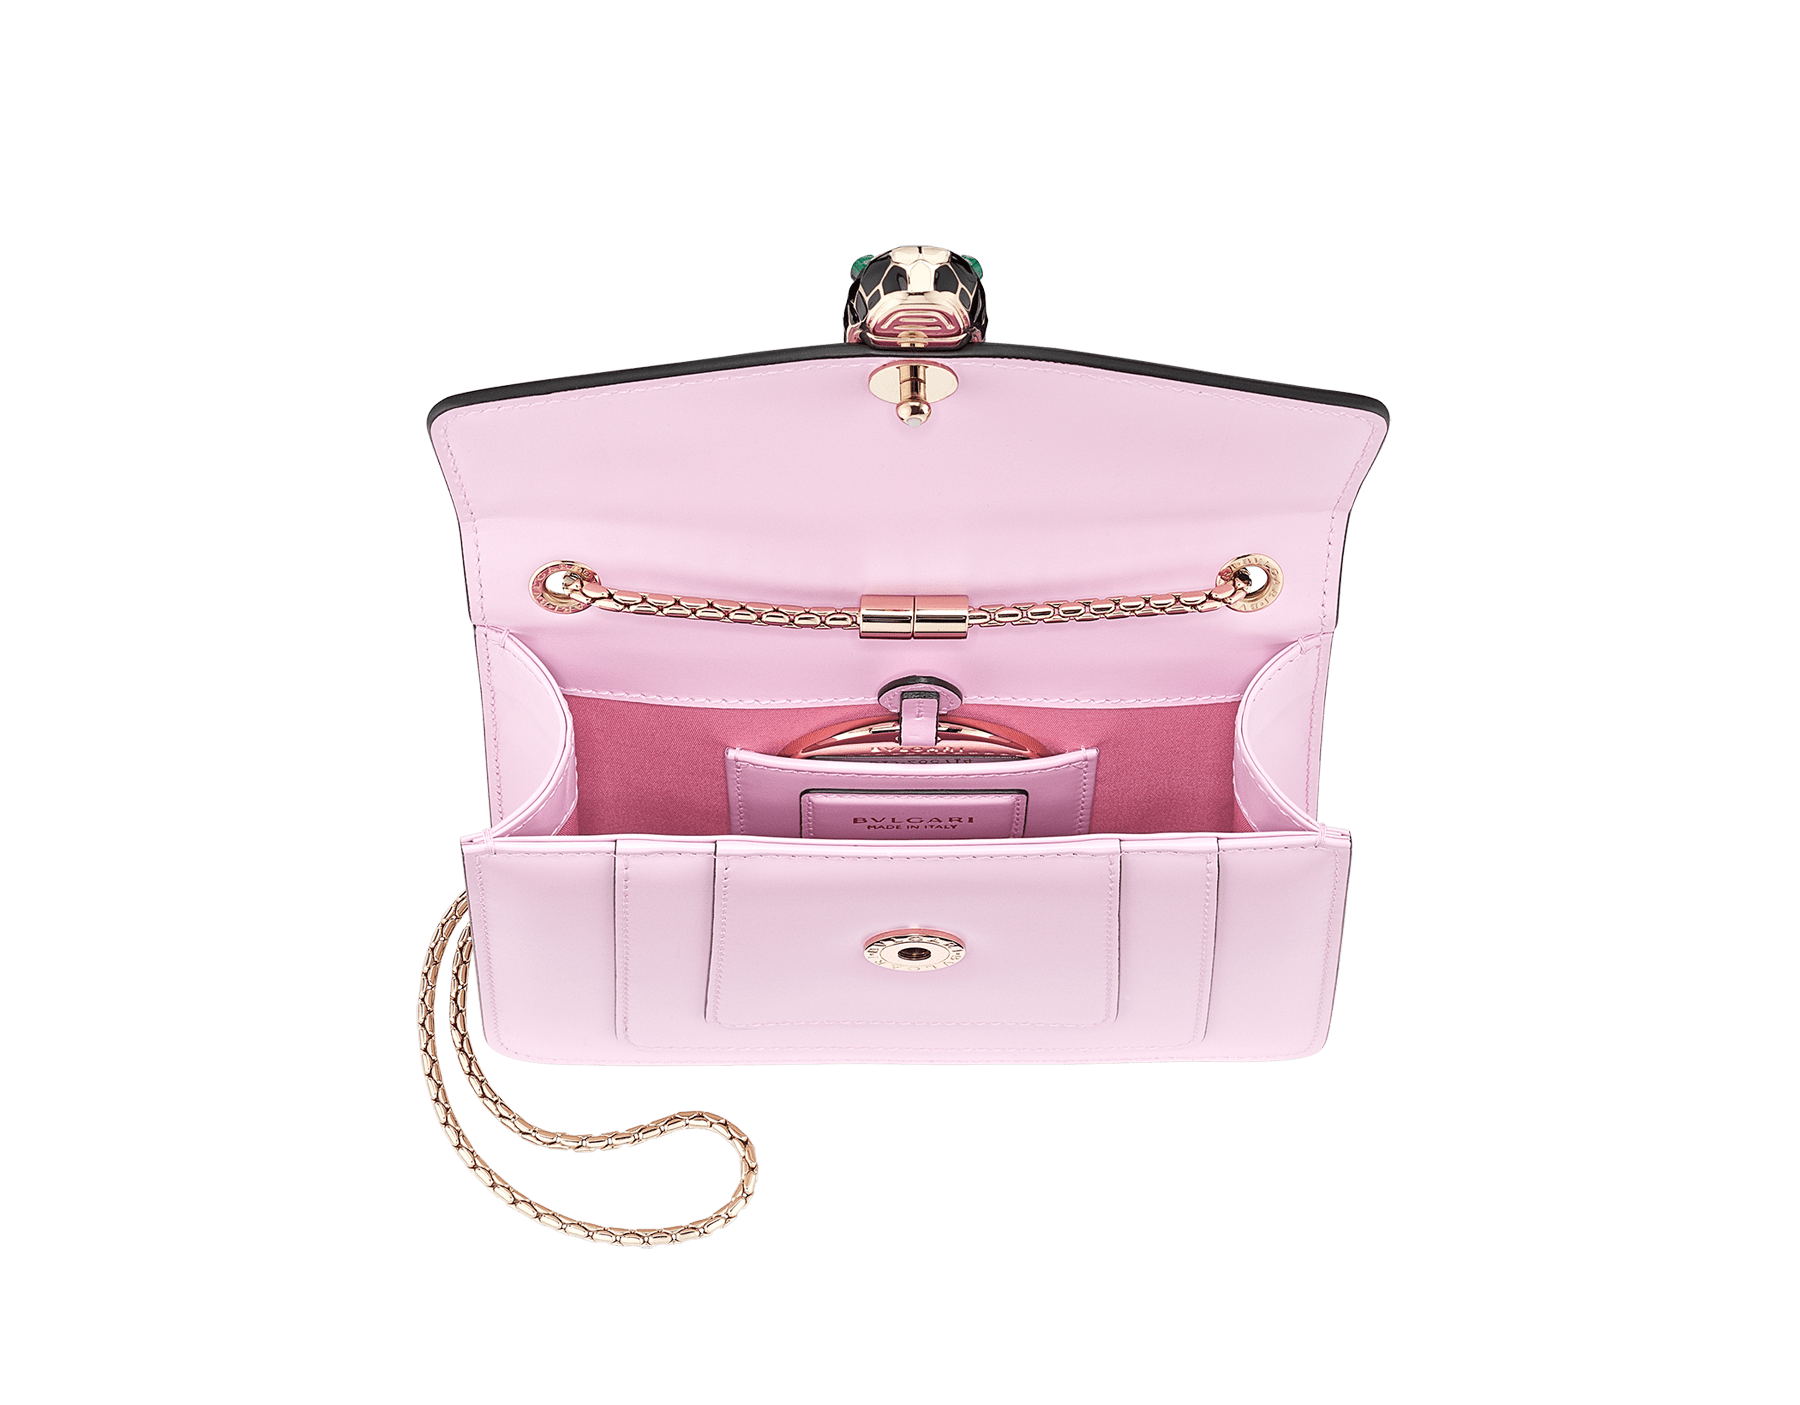 """Serpenti Forever "" crossbody bag in carmine jasper calf leather. Iconic snakehead closure in light gold plated brass enriched with black and white enamel and green malachite eyes 422-CLc image 4"